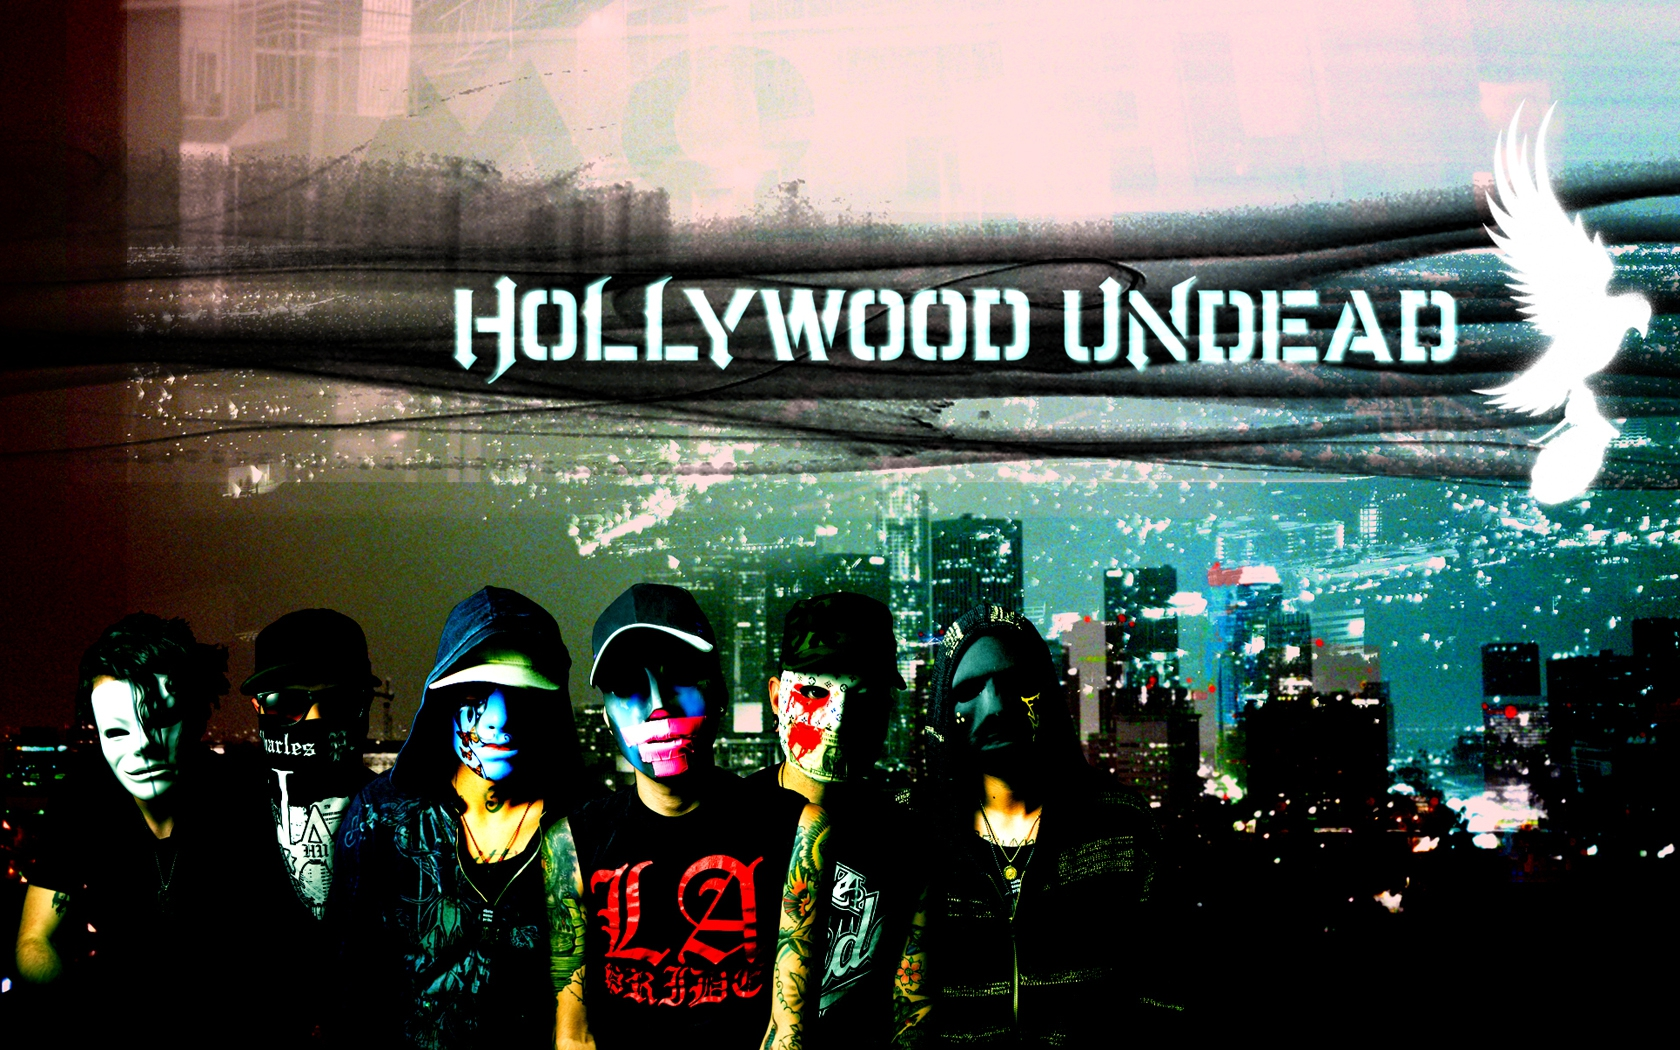 hollywood desktop background - photo #35